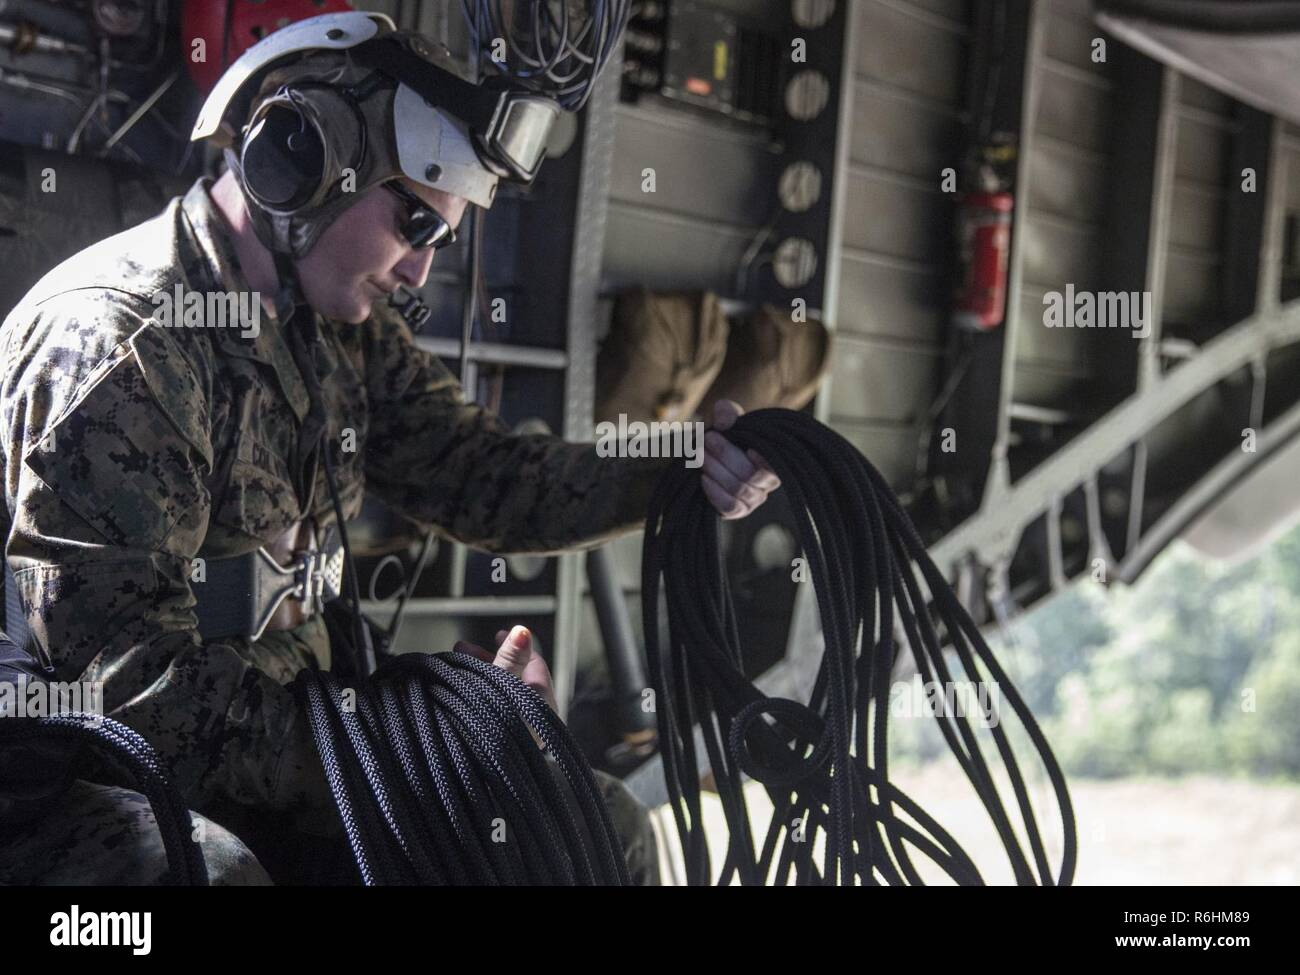 Staff Sgt. Jerry Colvin unravels a rope before rappelling out of a CH-53 Super Stallion during a ceremony at Stone Bay, a Camp Lejeune satellite training area, N.C., May 17, 2017.  The ceremony marks the reopening of Landing Zone Vulture, which closed Sept. 2, 2015 after a CH-53 crashed resulting in the death of one Marine.  The instructors took the opportunity to memorialize their fallen Marine, Staff Sgt. Jonathan Lewis, through the sustainment rappel. Staff Sgt. Colvin is with EOTG, II Marine Expeditionary Force Headquarters Group. - Stock Image